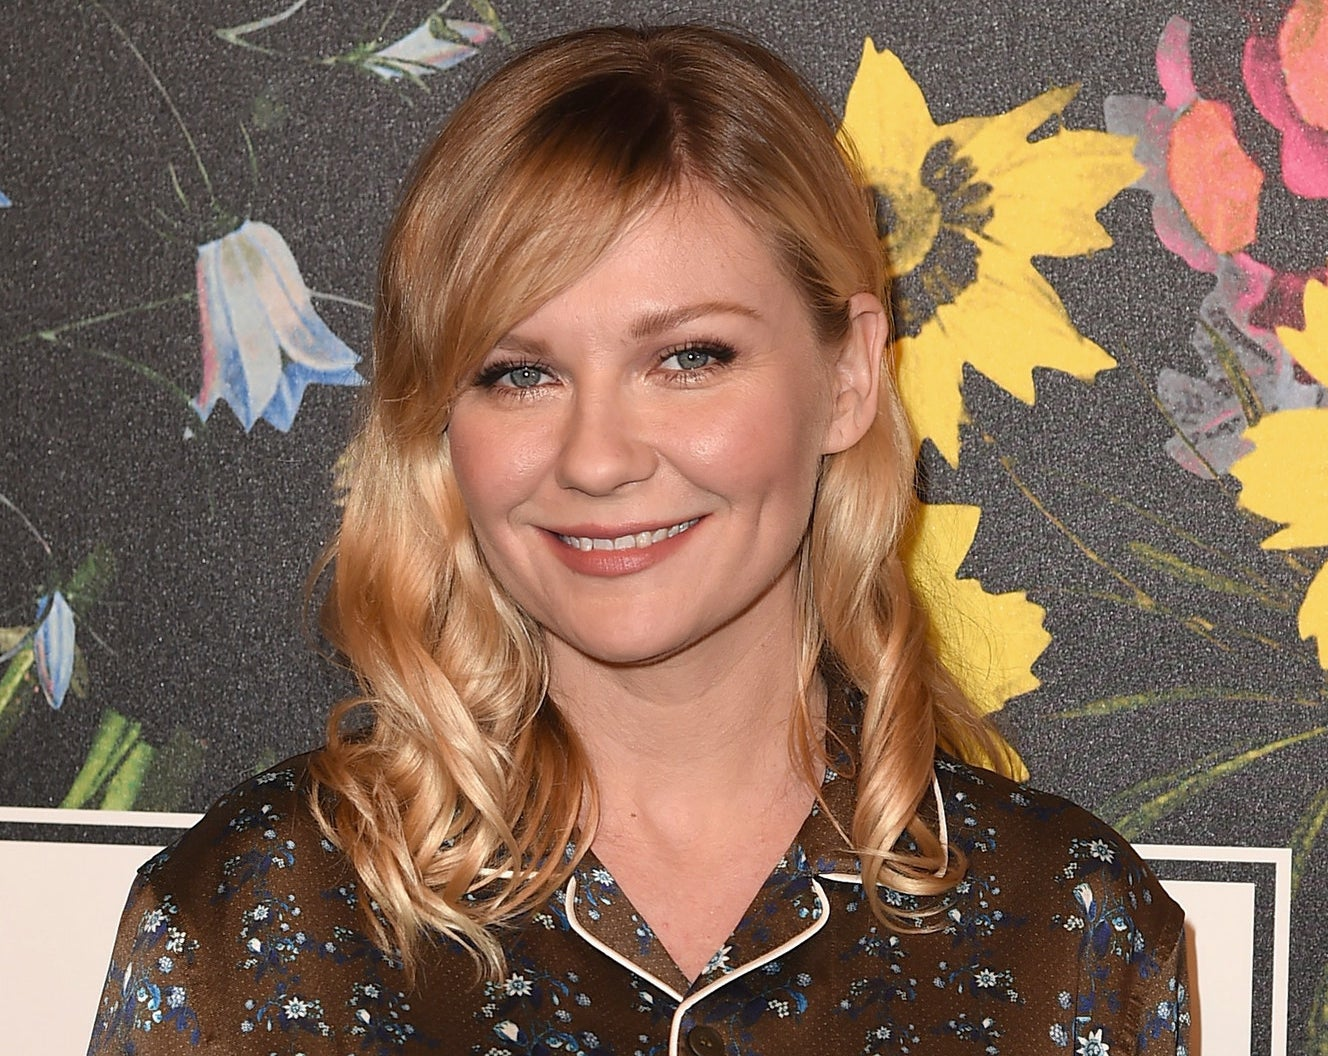 Kirsten Dunst doesn't usually respond to her Twitter mentions, but when she's does it's worth some recognition. And that's exactly why we're here now!